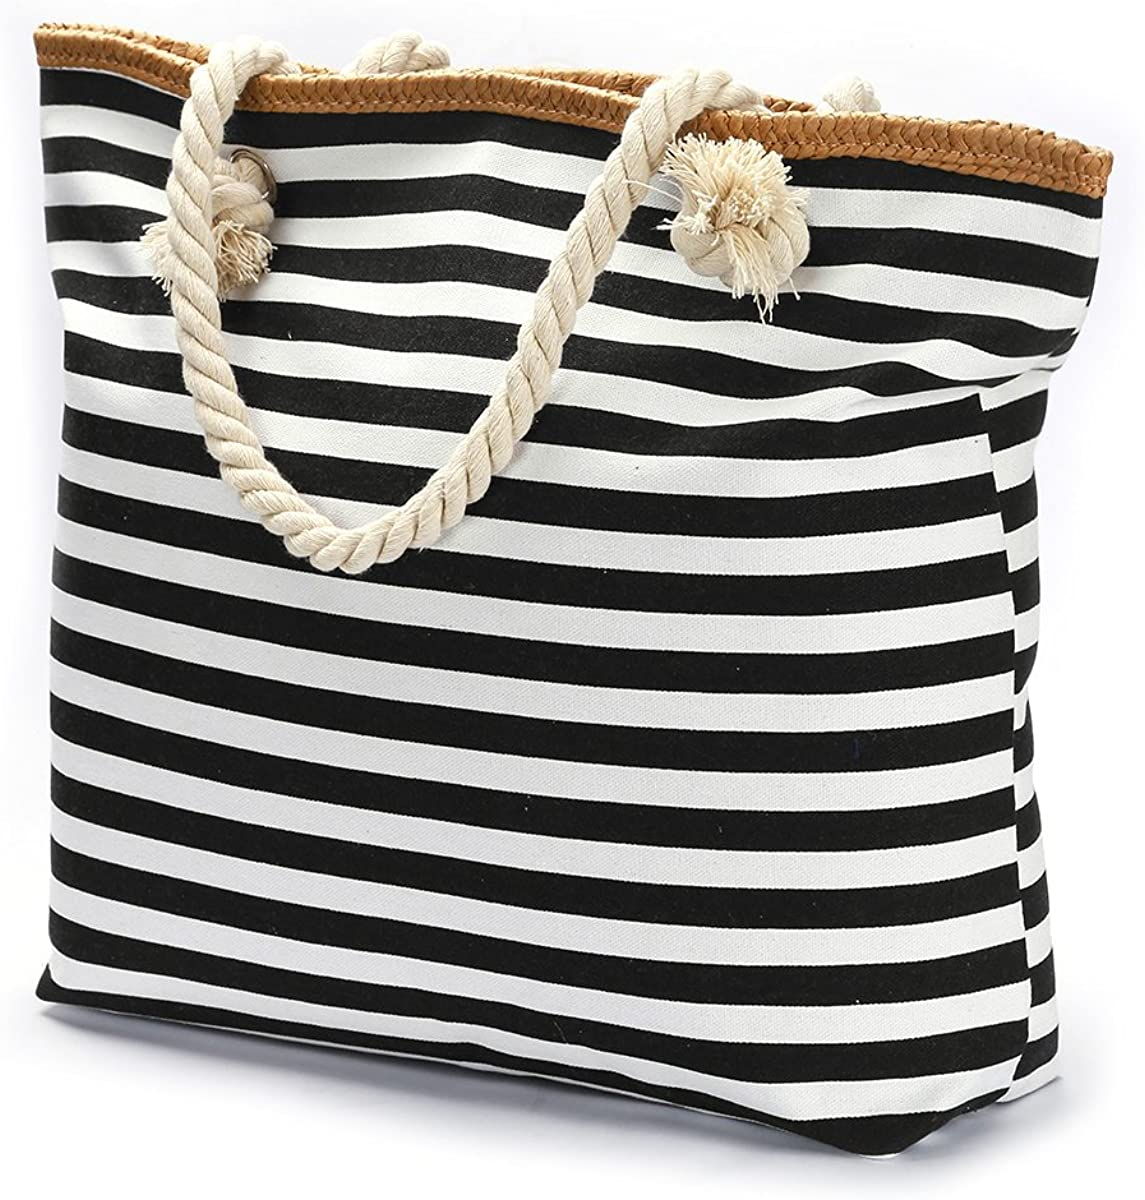 We We Large Straw Beach Bag Duffel Bags Waterproof Canvas Tote Hand Bag for Women Girls